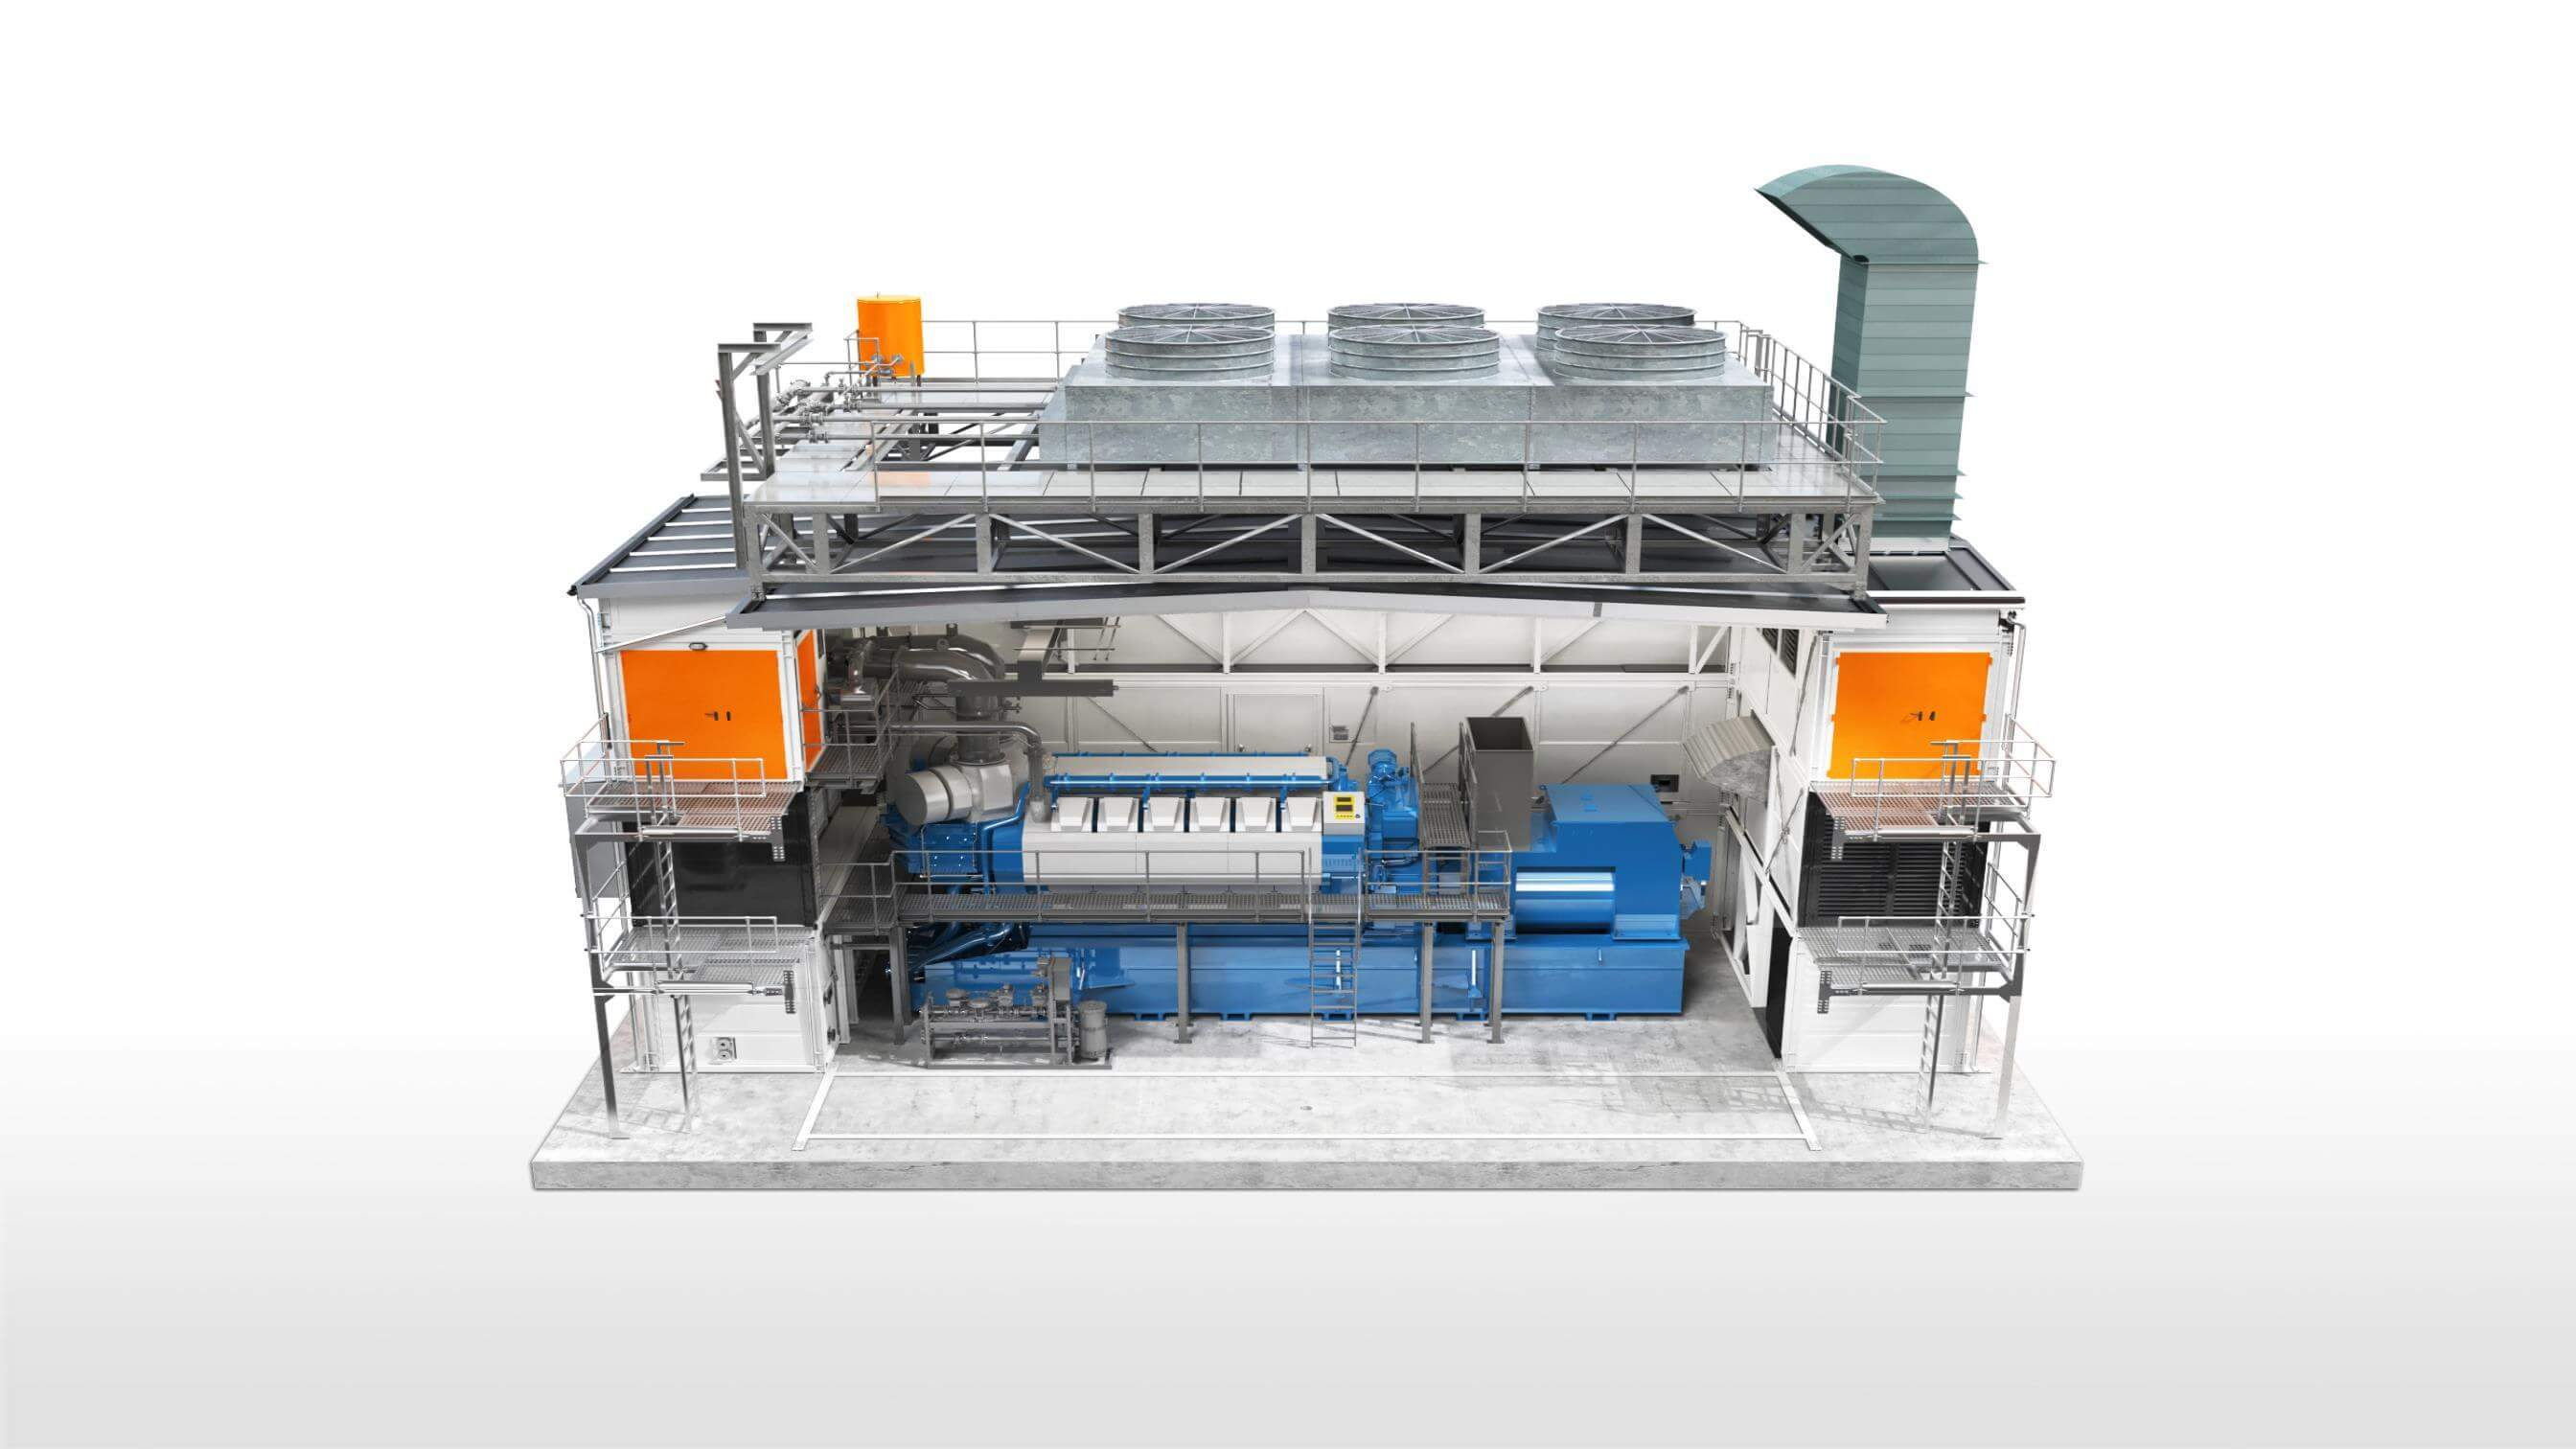 Wartsila power block